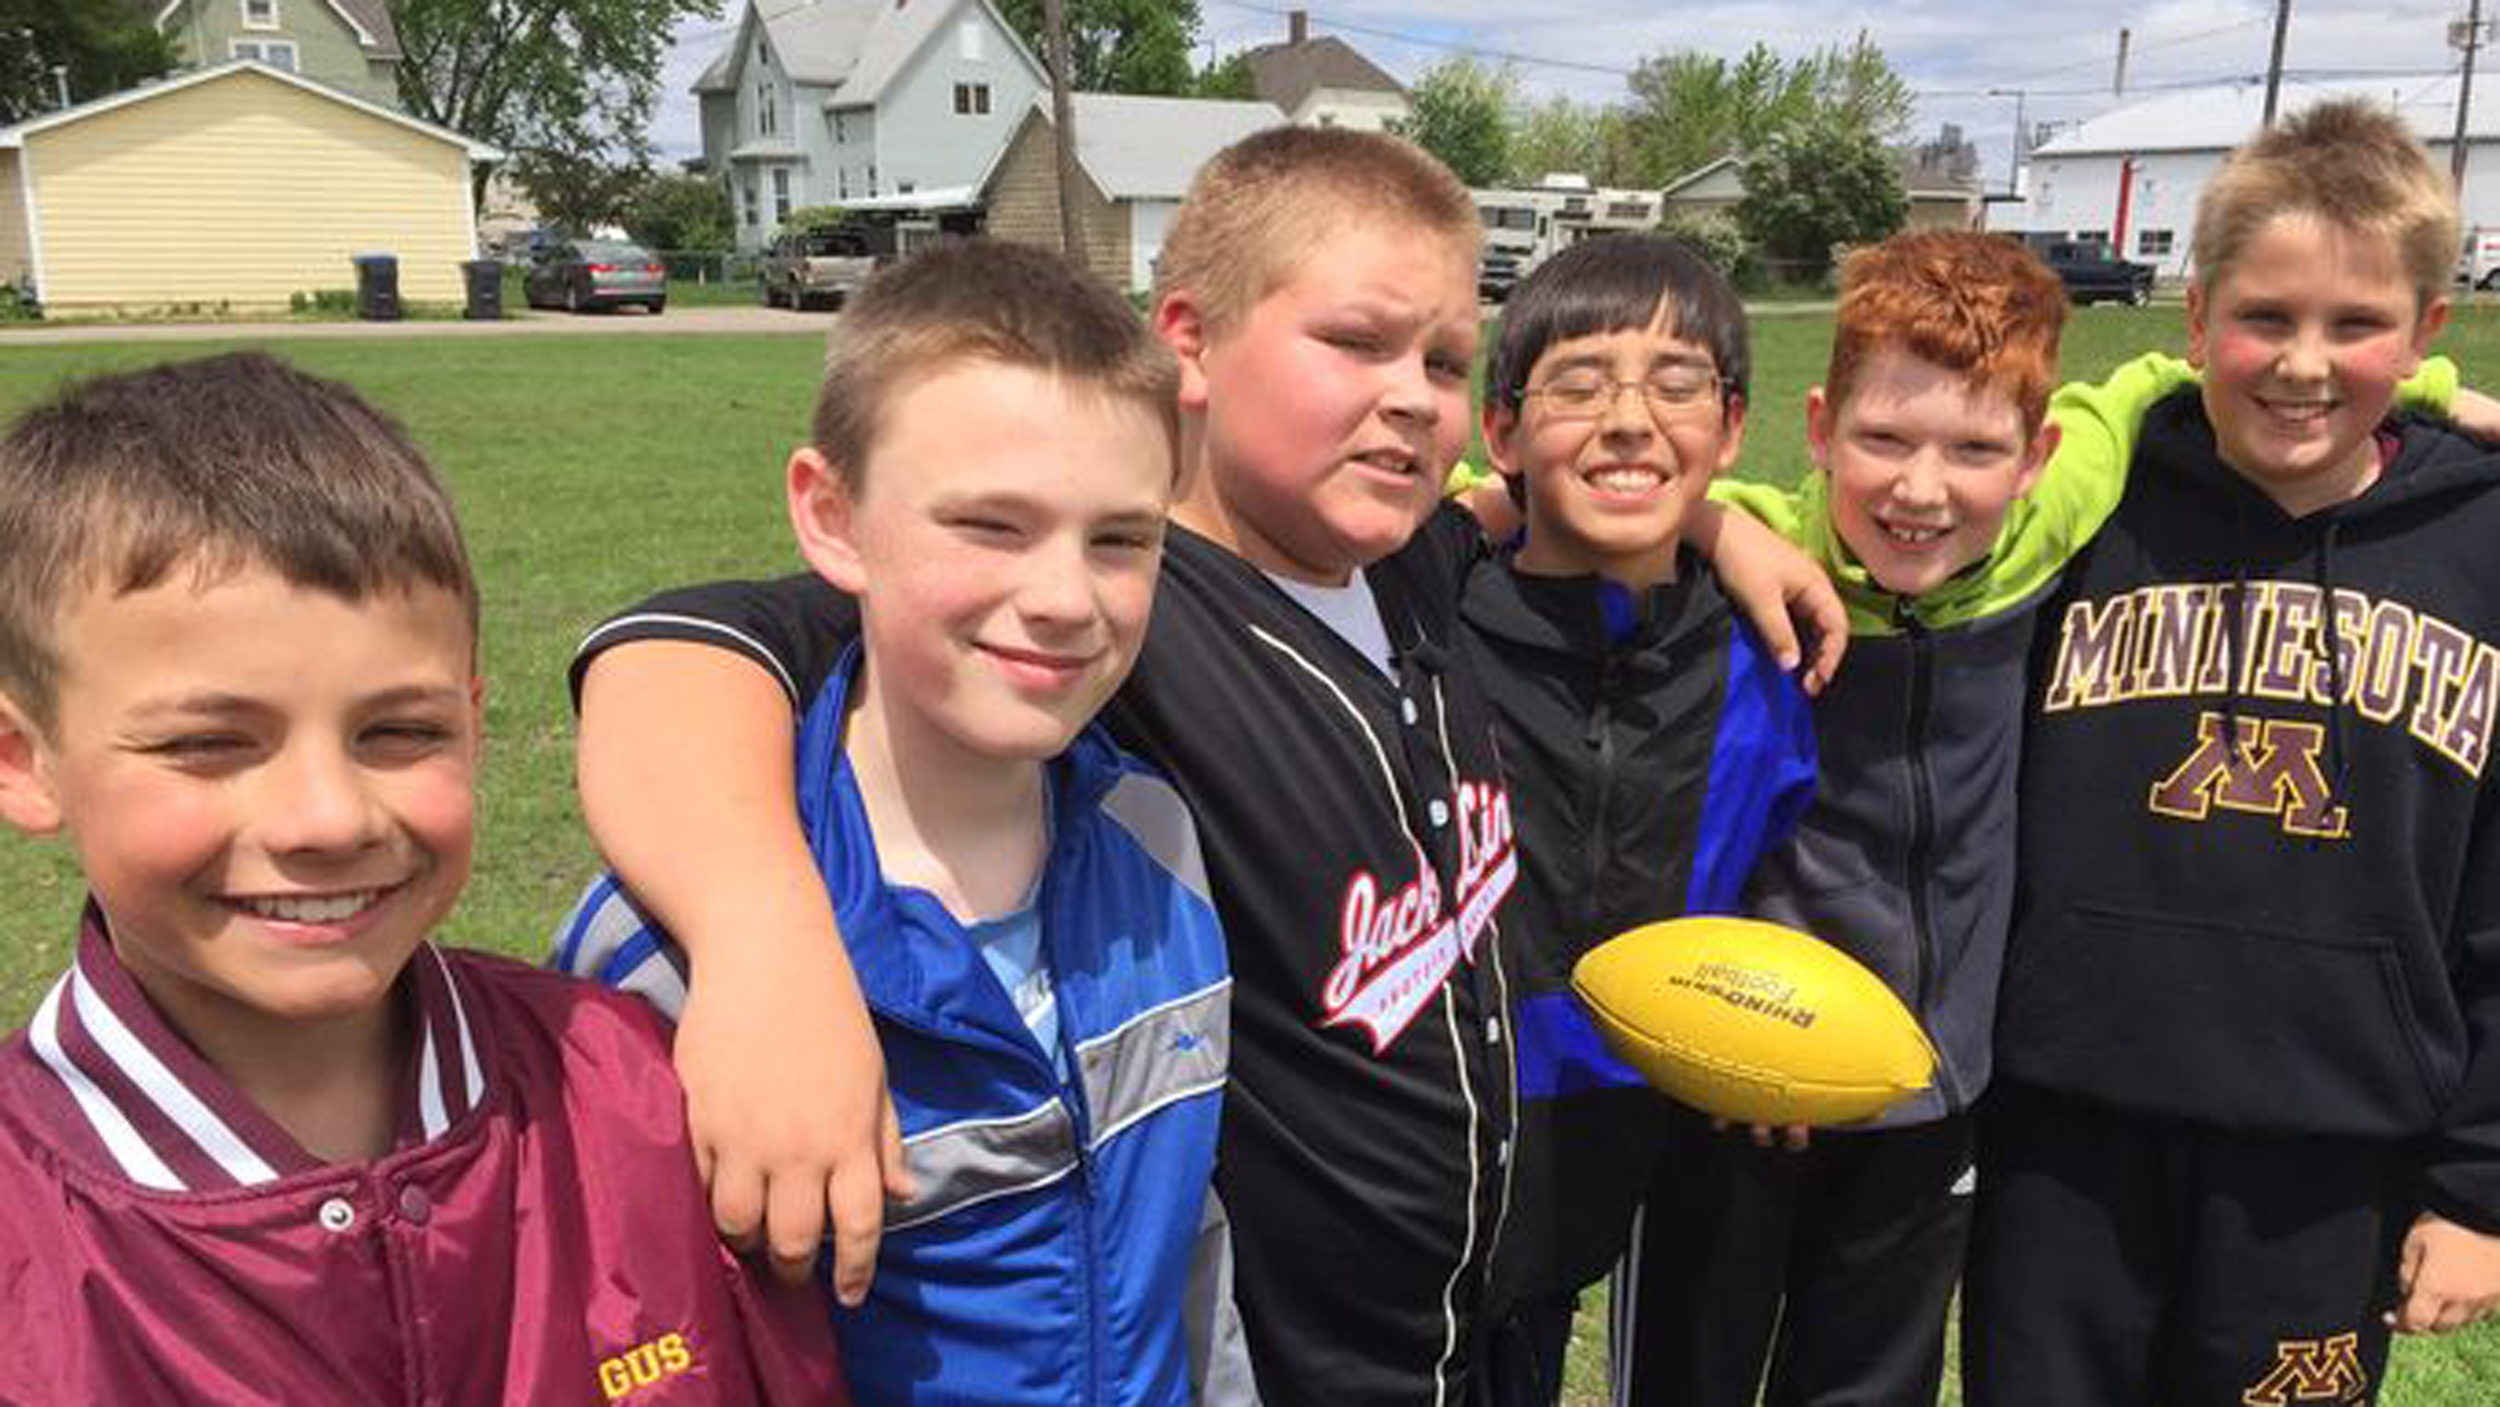 At one elementary school, 5 boys befriend the bullied — and change lives